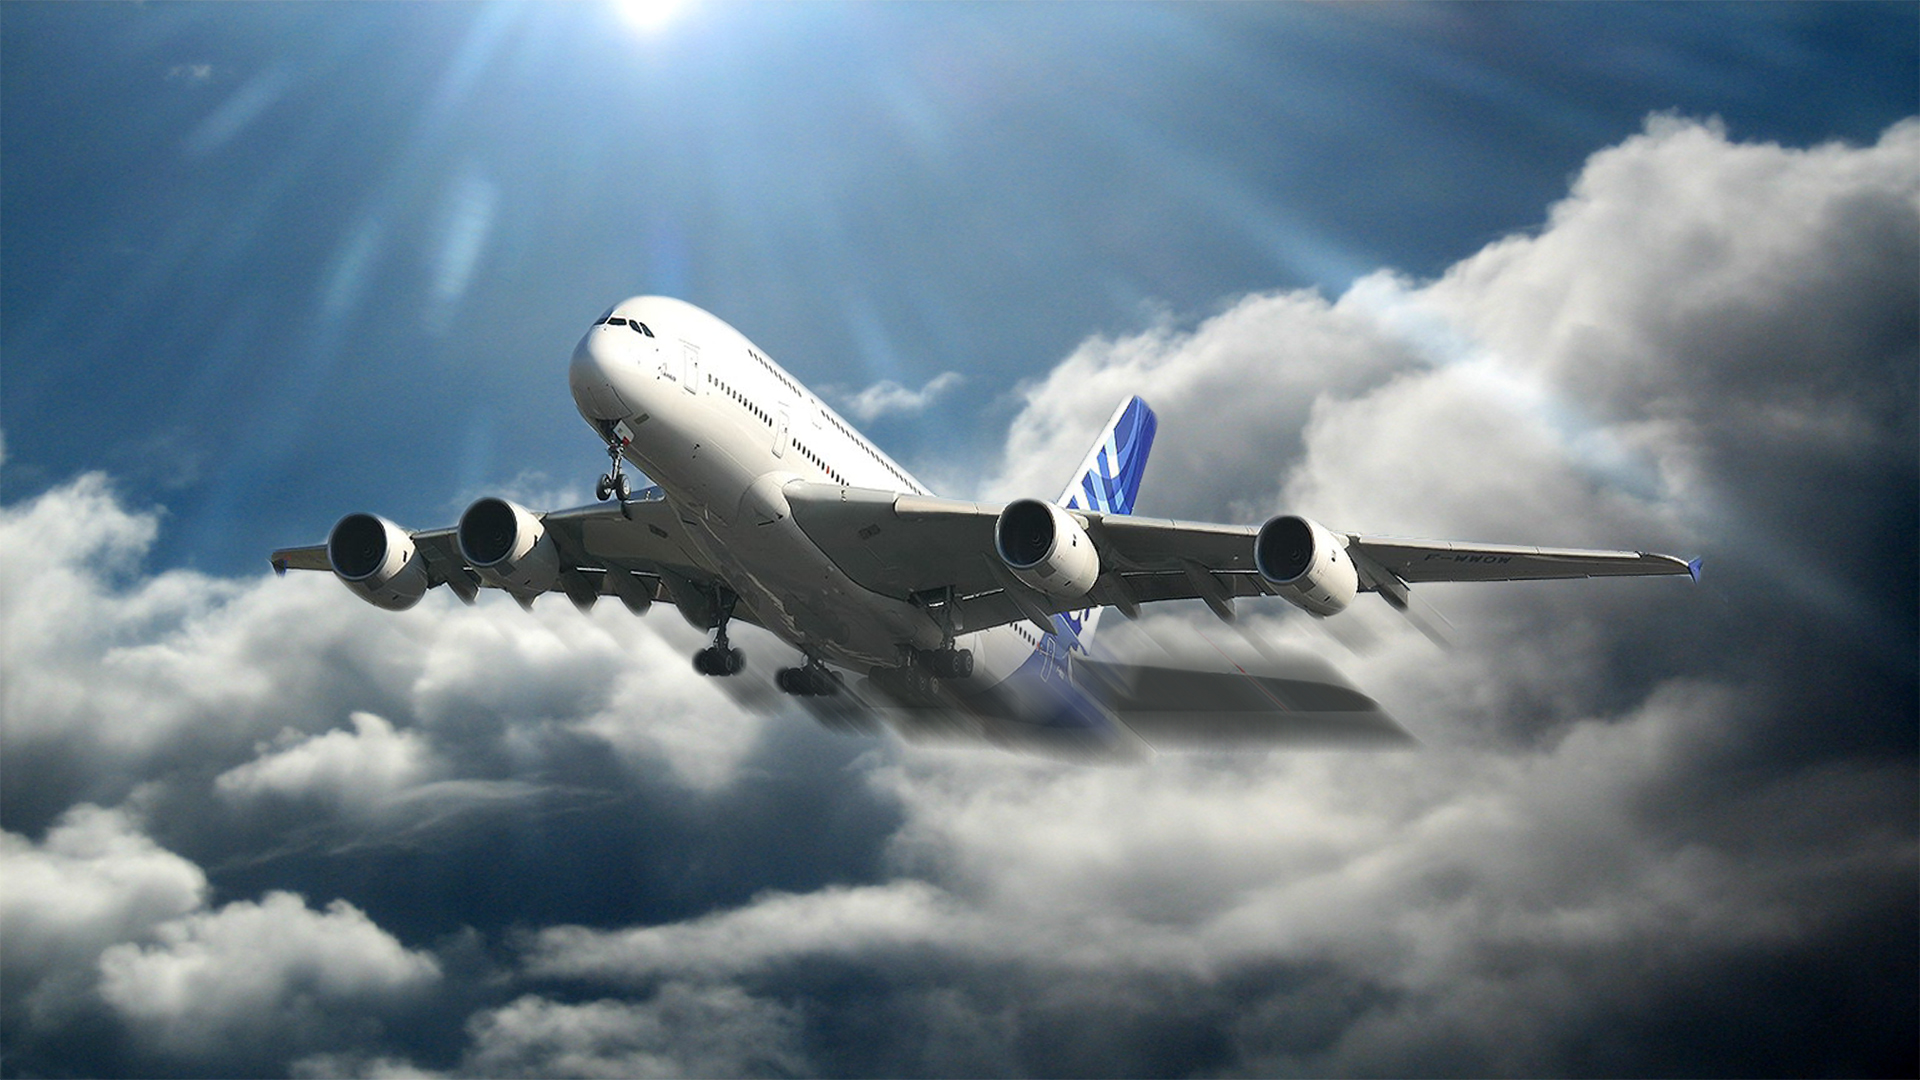 28 Airbus A380 HD Wallpapers | Backgrounds - Wallpaper Abyss